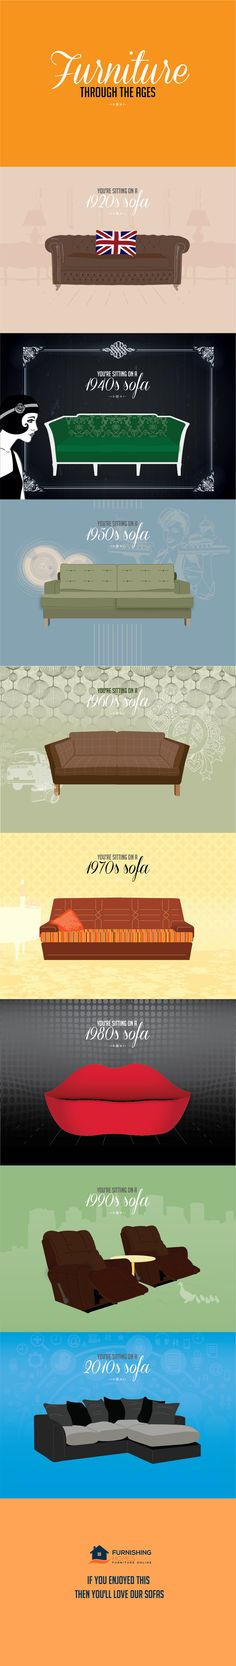 Take a journey through the history of furniture design in this cool piece of interactive content